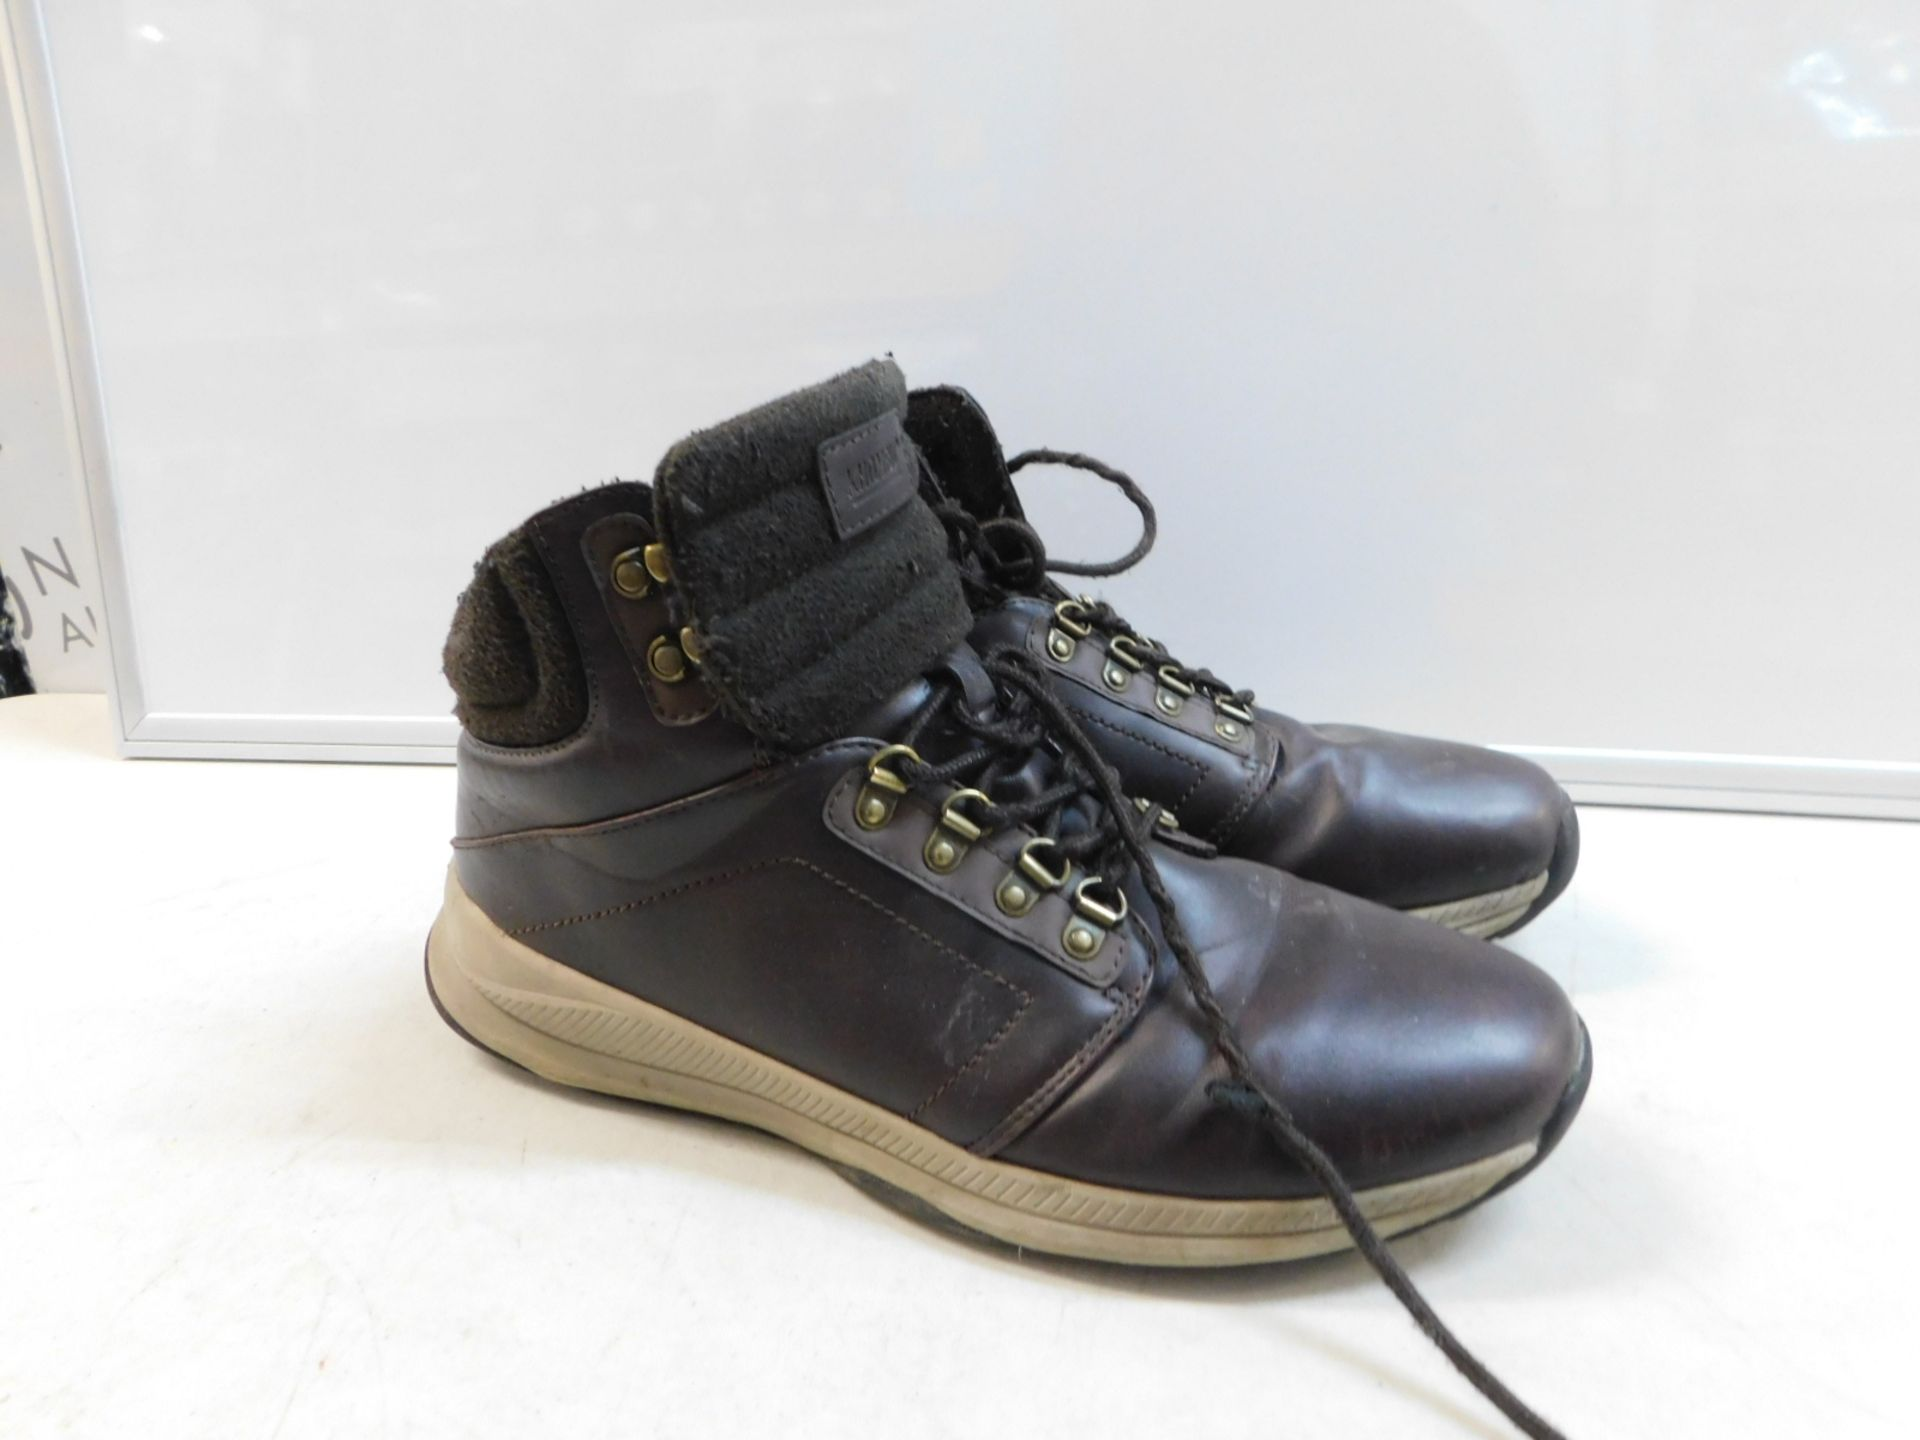 Lot 480 - 1 PAIR OF KHOMBU MENS ALL TERRAIN BROWN BOOTS UK SIZE 11 RRP £34.99